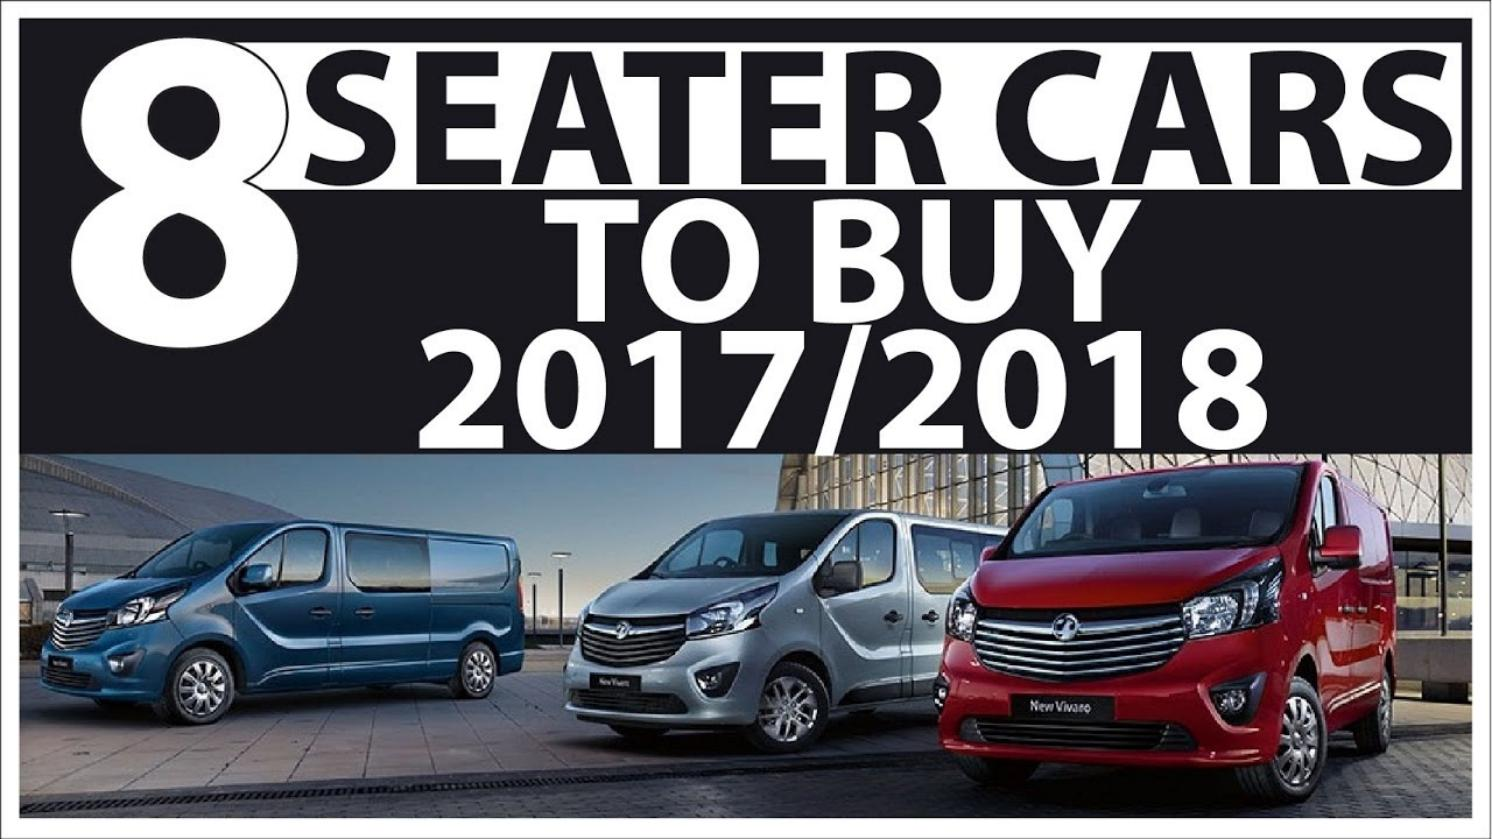 Top 5 Best 8 Seater Cars To Buy 2017 2018 Best Passenger Suvs 1 By New Cars Issuu